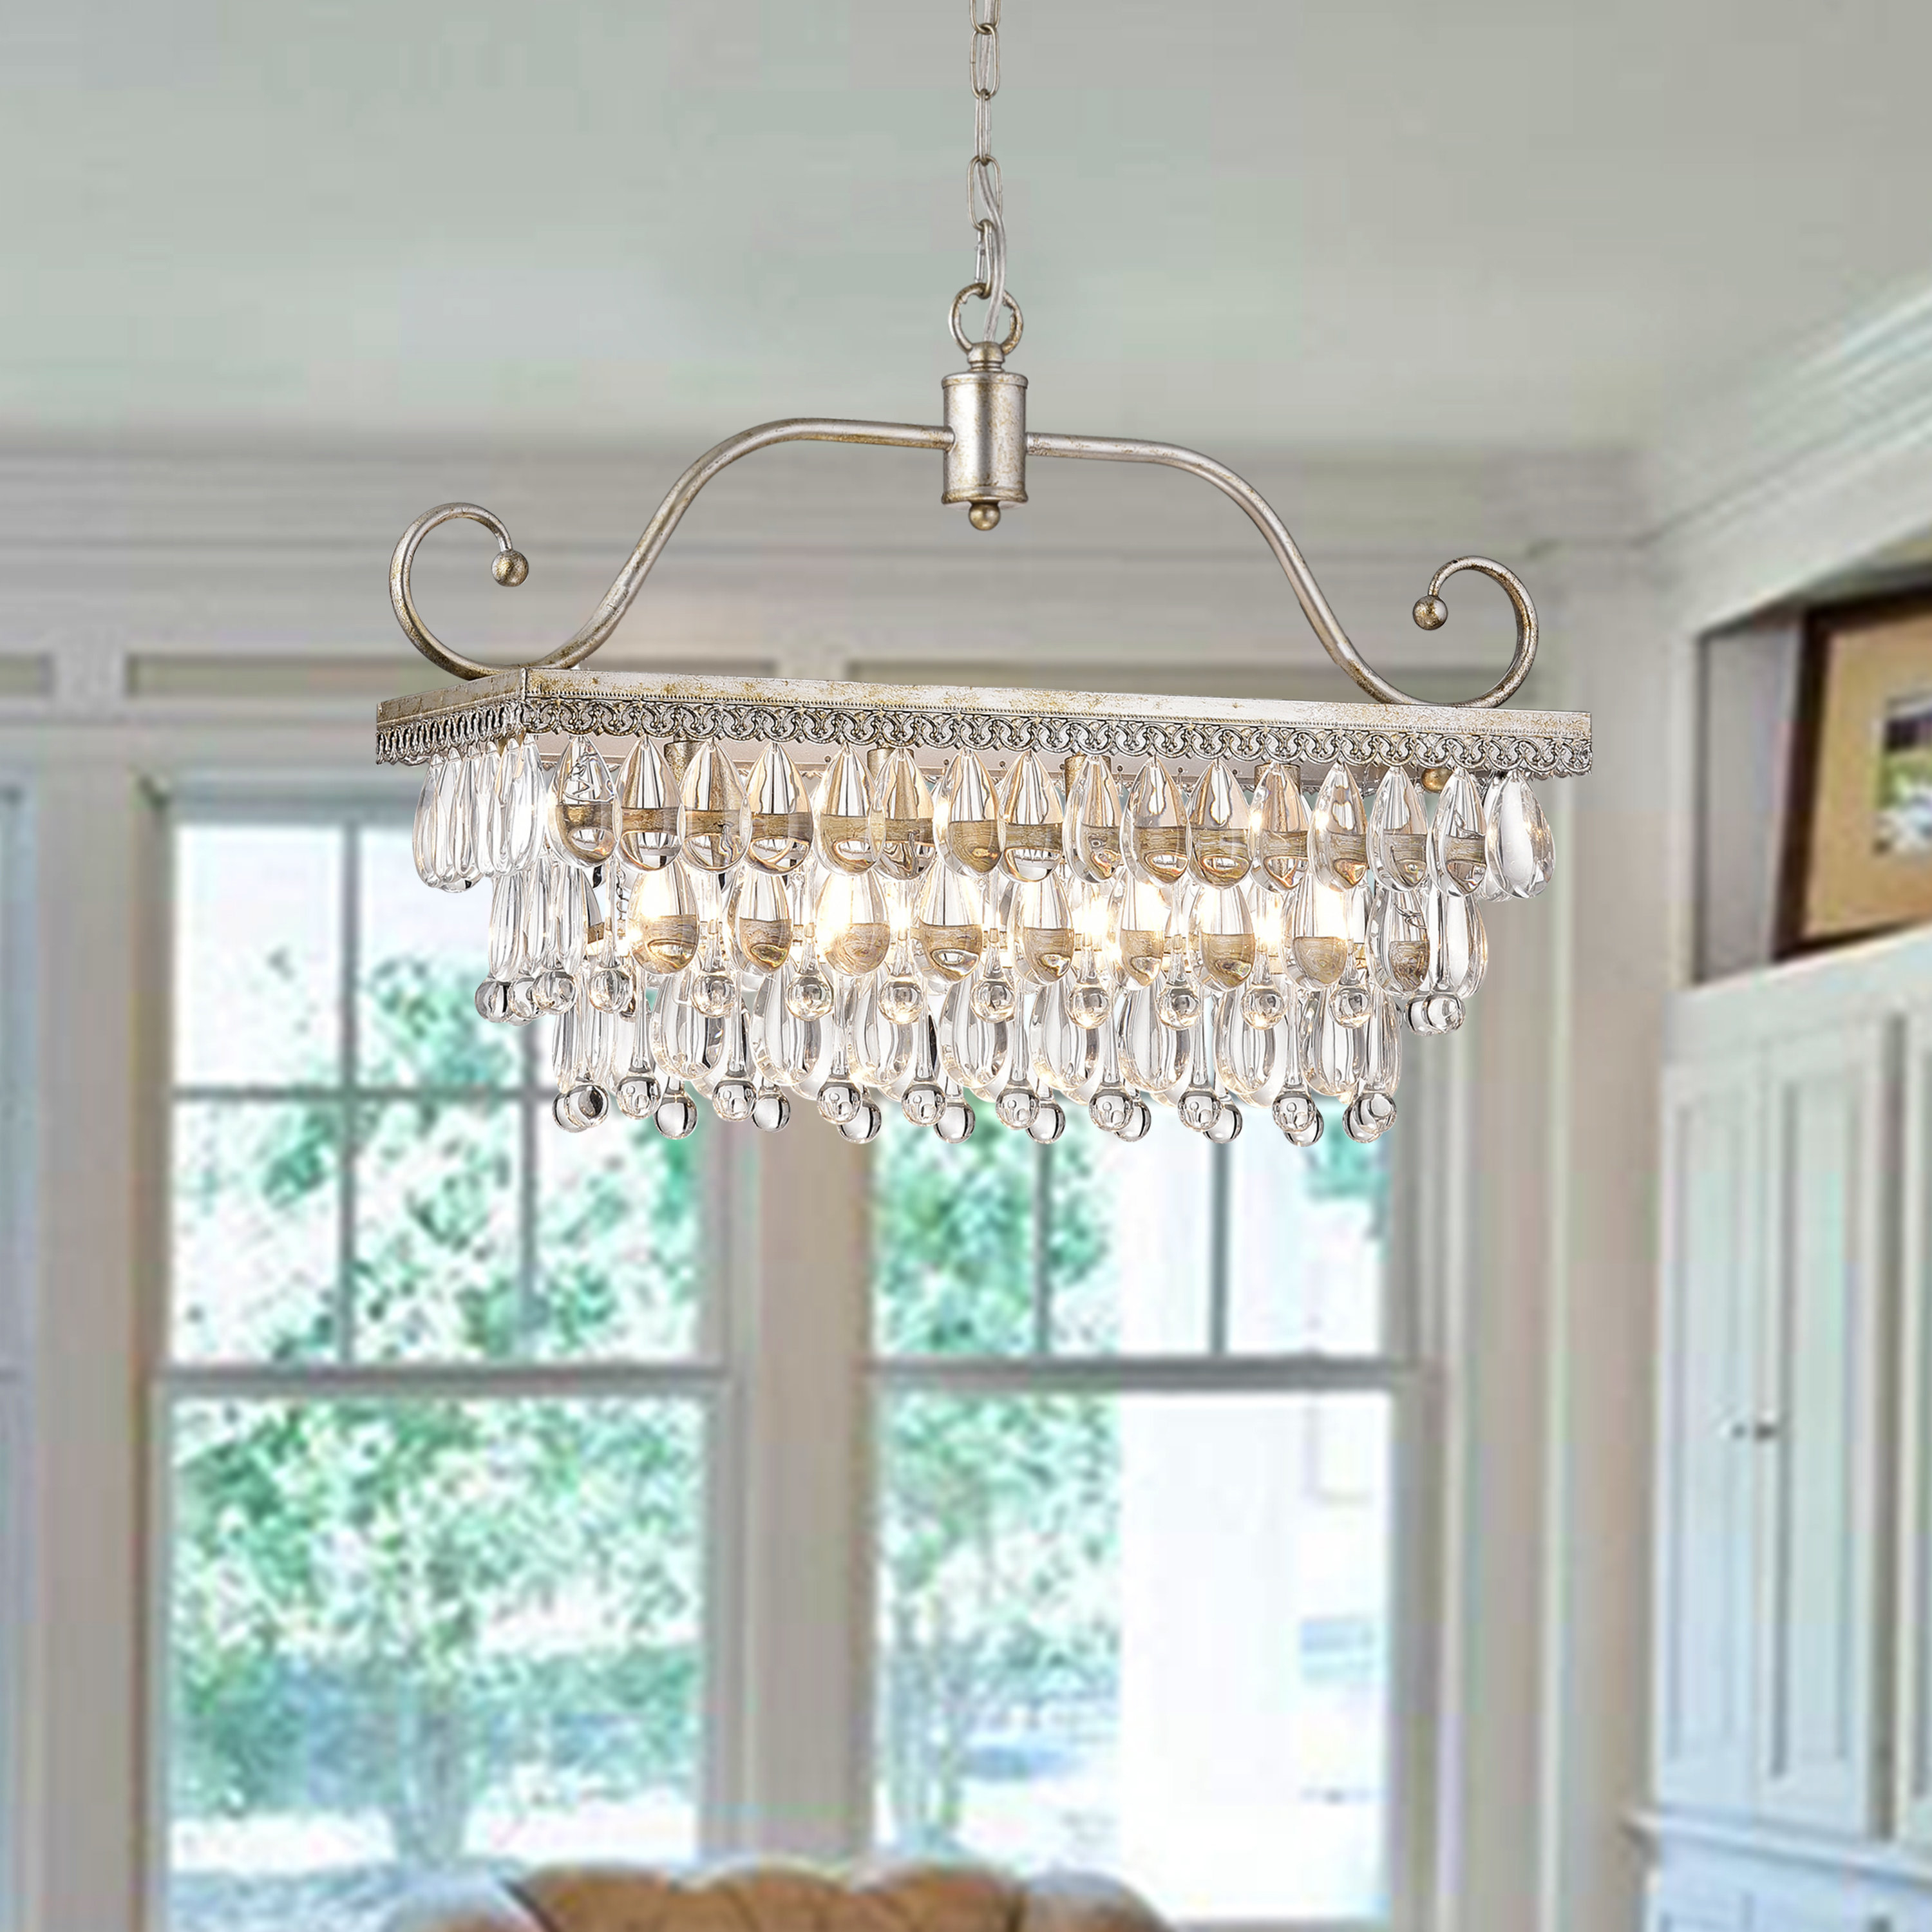 Von 4 Light Crystal Chandeliers Within Widely Used Gerhart 4 Light Crystal Chandelier (View 2 of 25)